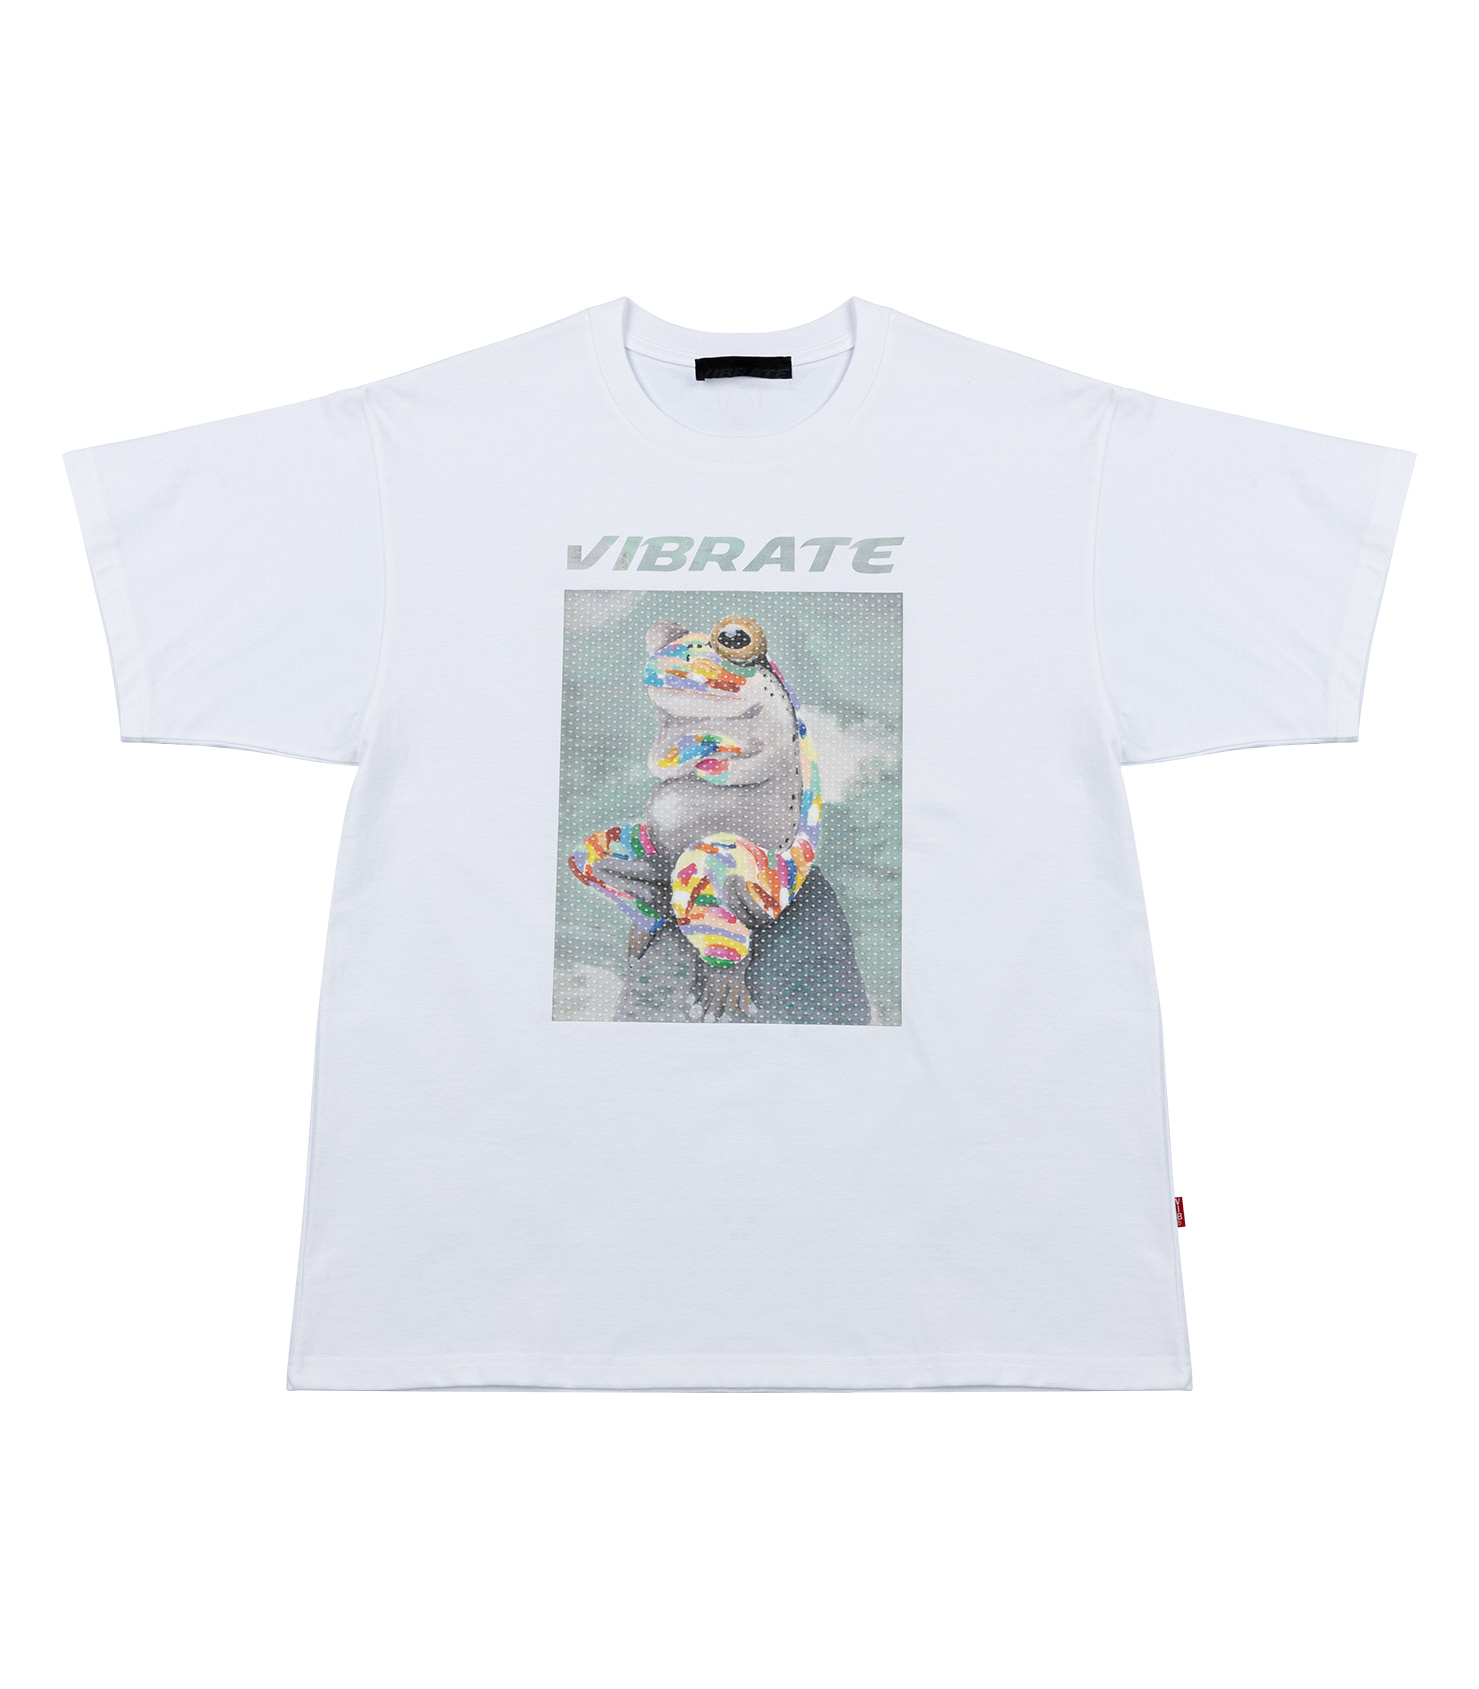 GLORY FROG LOGO HOLOGRAPHY T-SHIRT (WHITE)